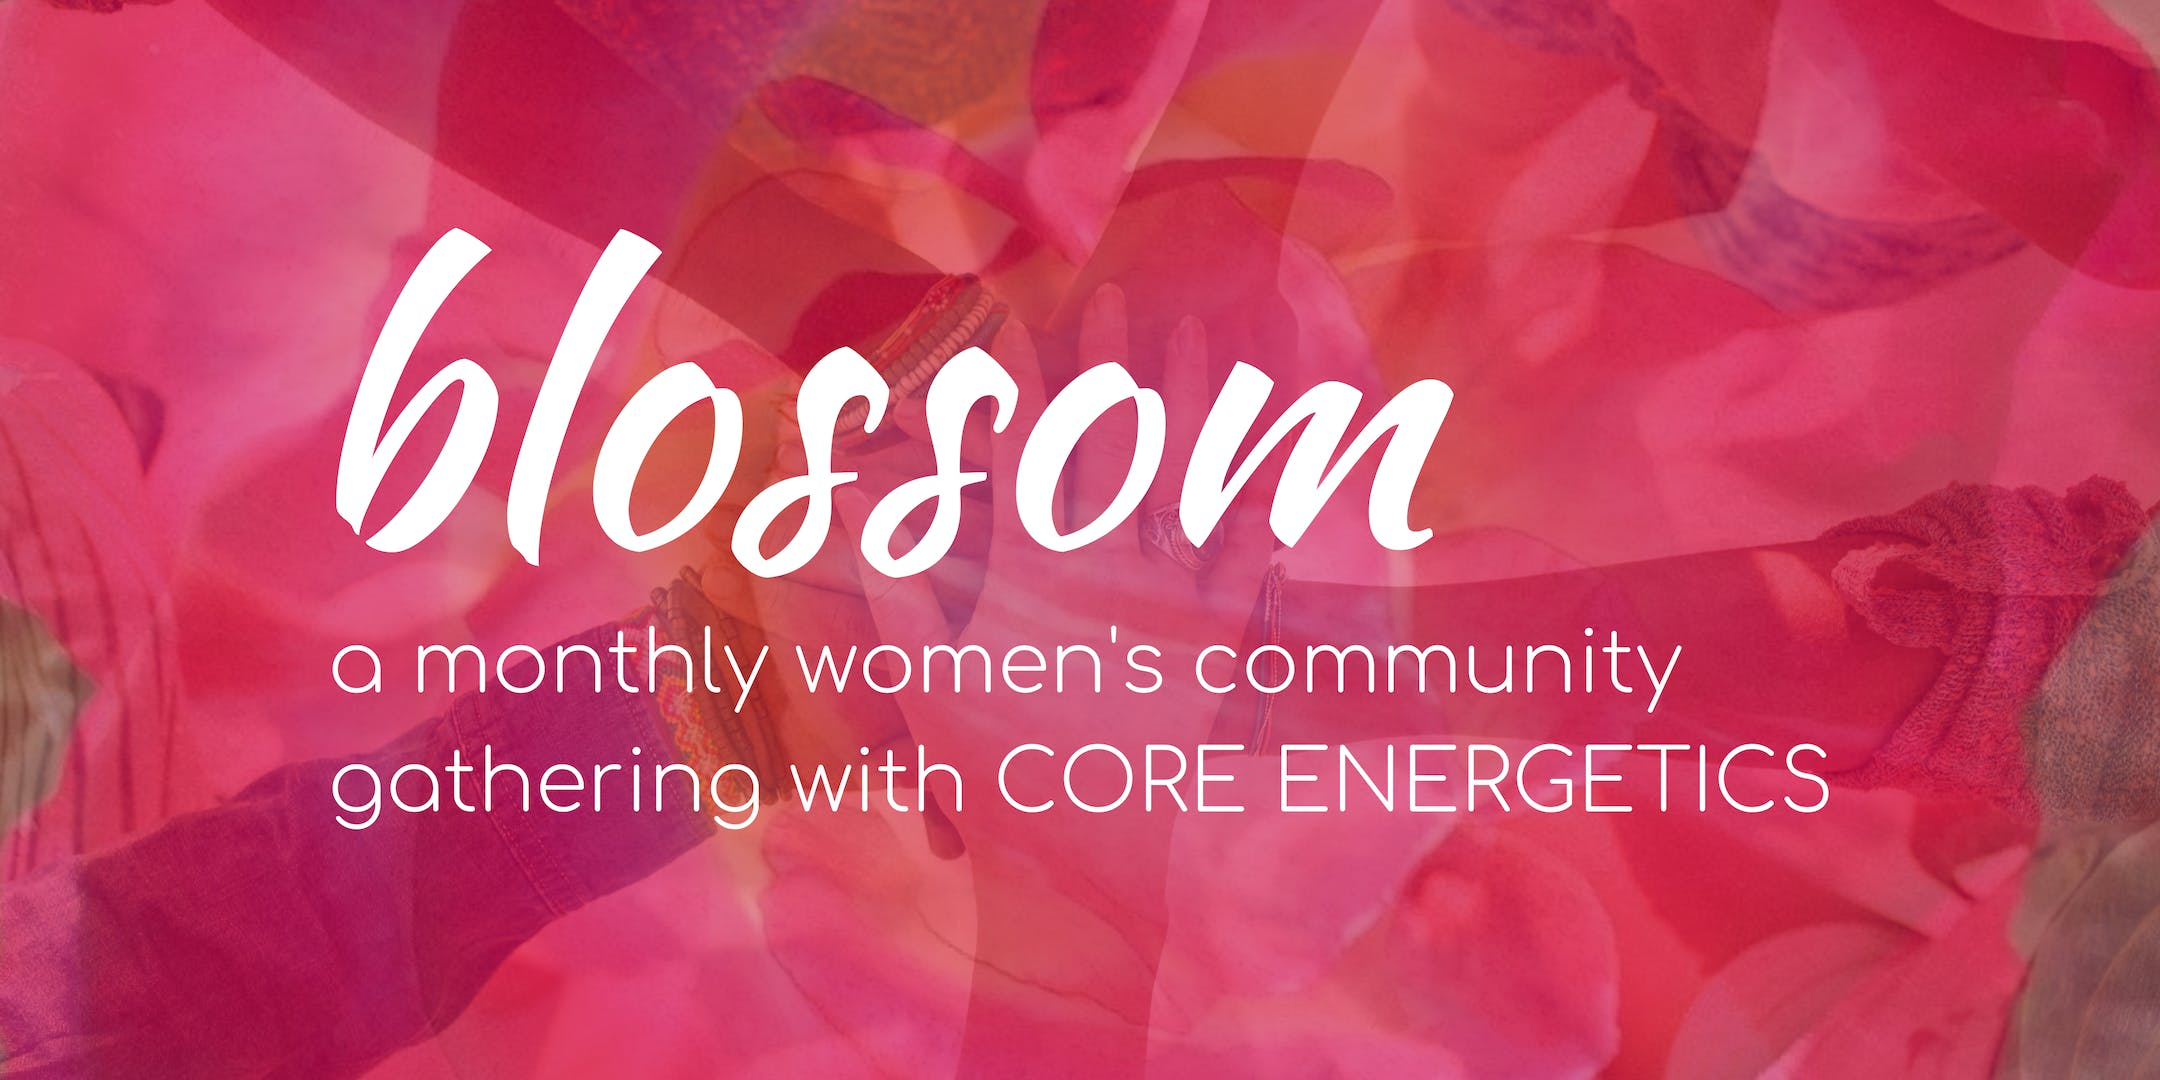 BLOSSOM, a women's community gathering with Core Energetics